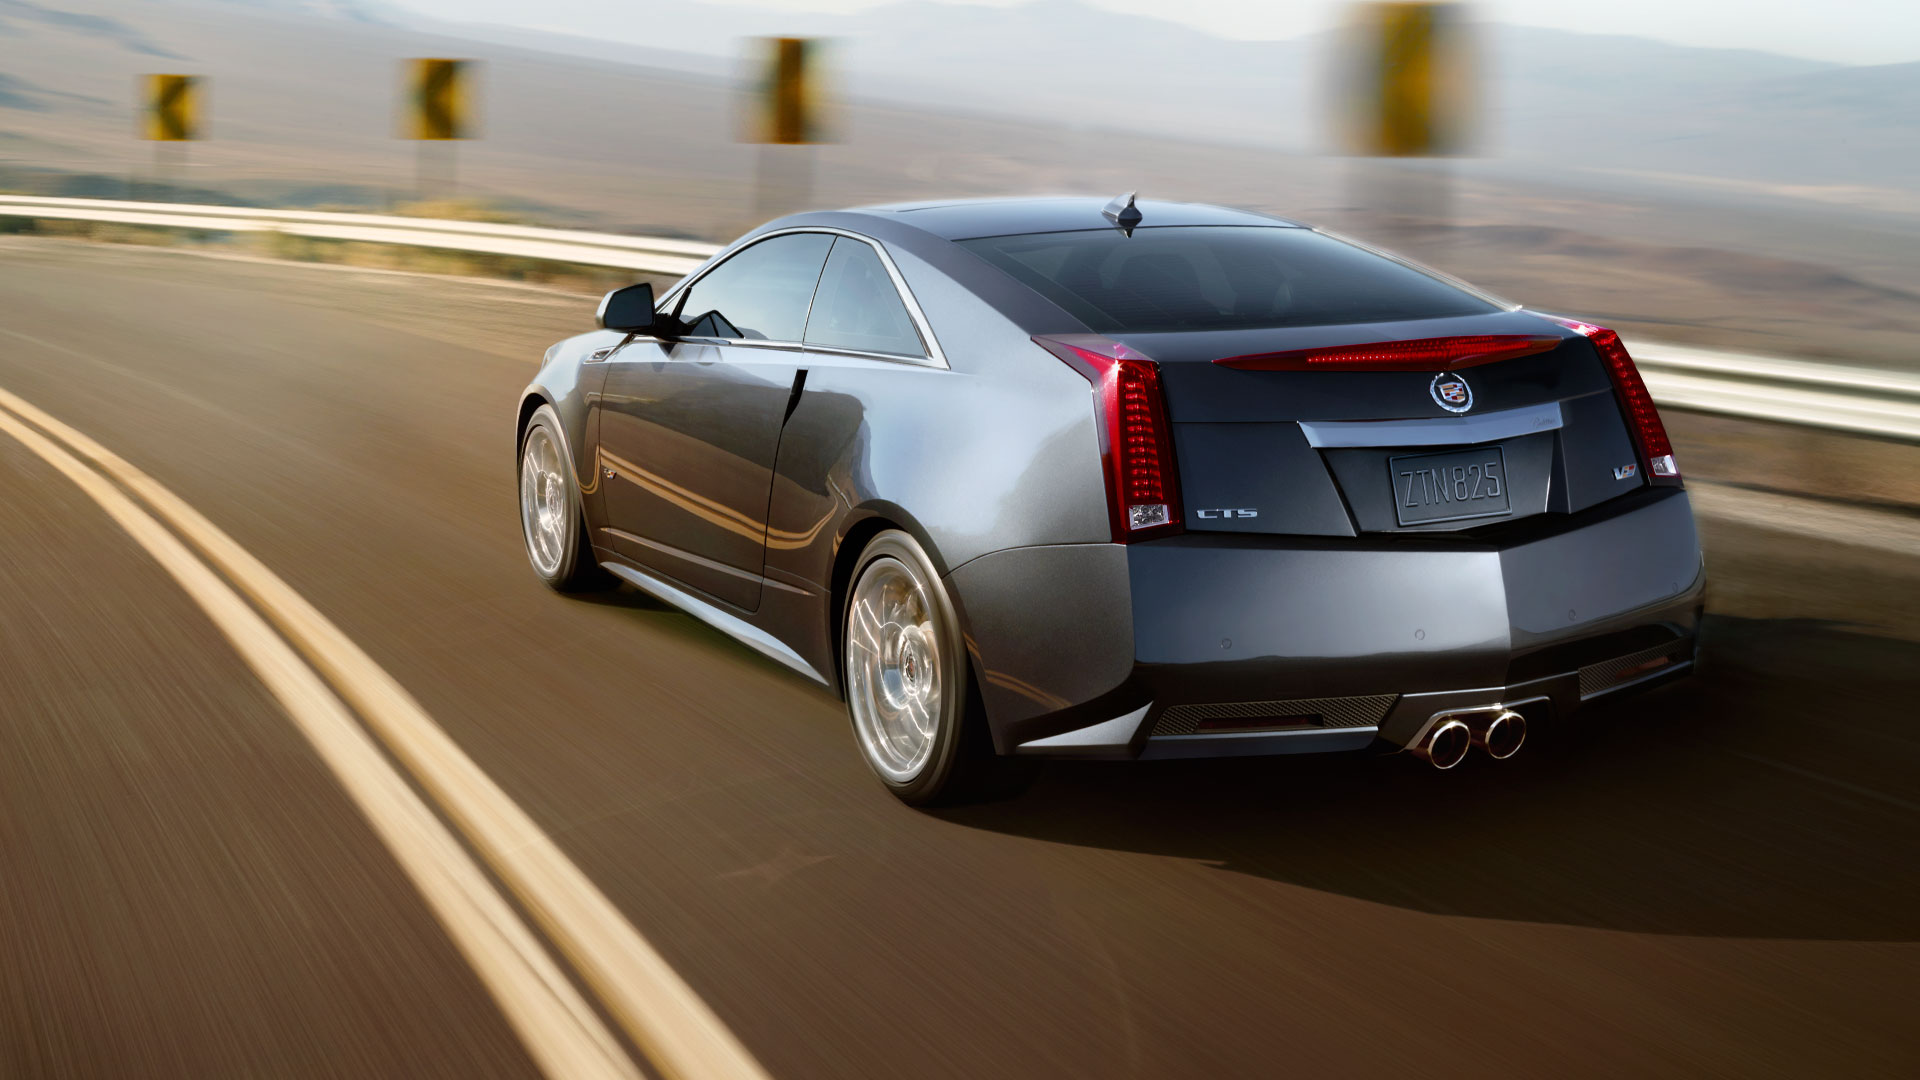 2012 cadillac cts coupe pictures information and specs auto. Black Bedroom Furniture Sets. Home Design Ideas